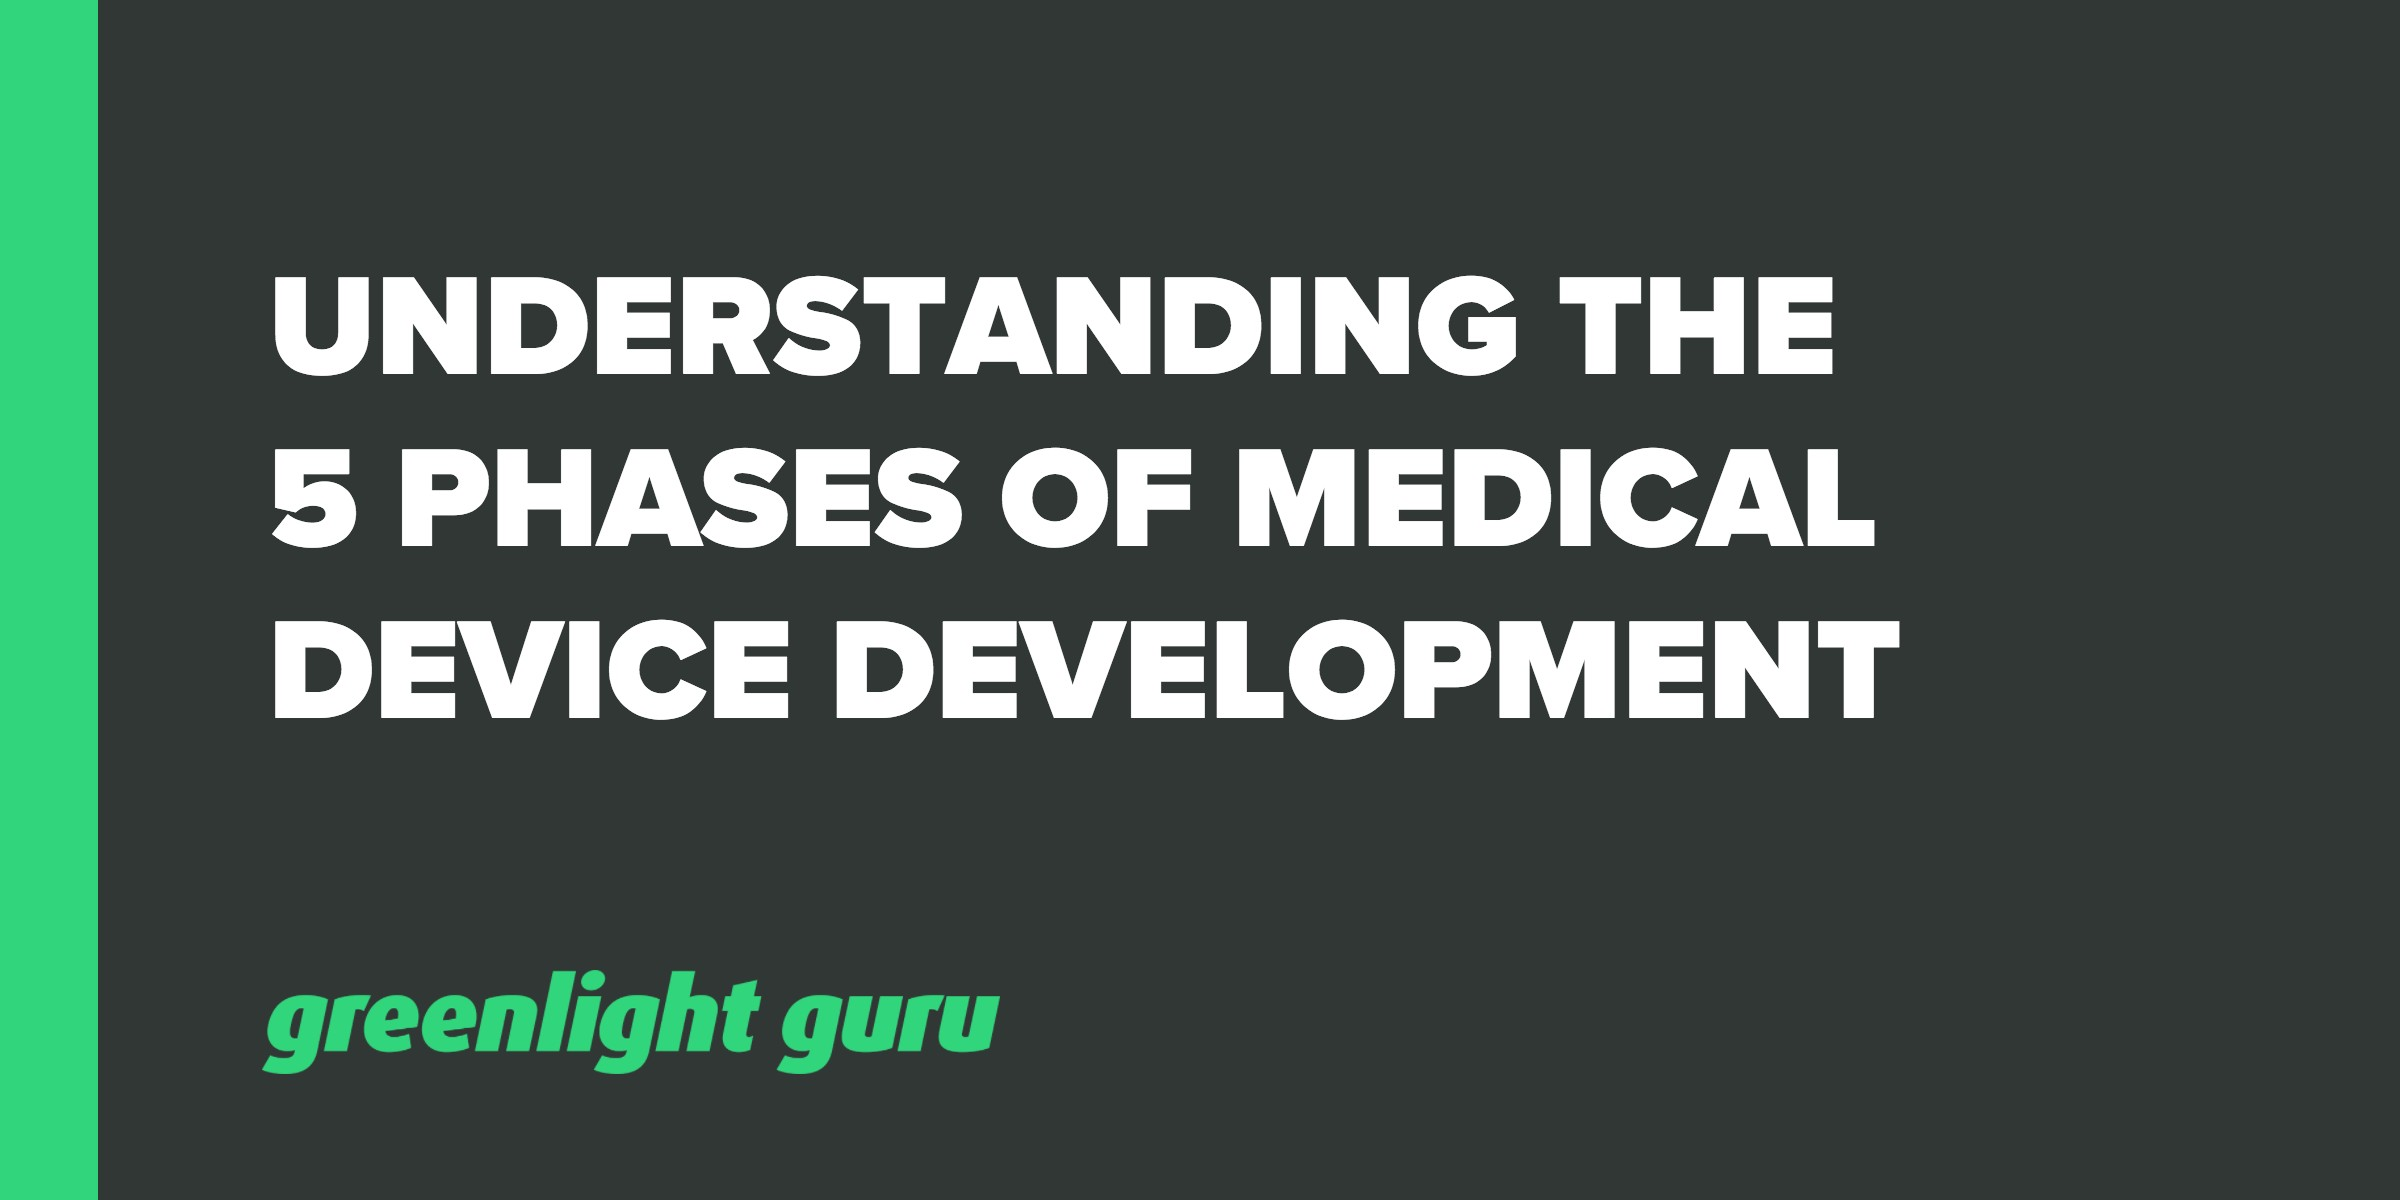 Understanding the 5 Phases of Medical Device Development - Featured Image